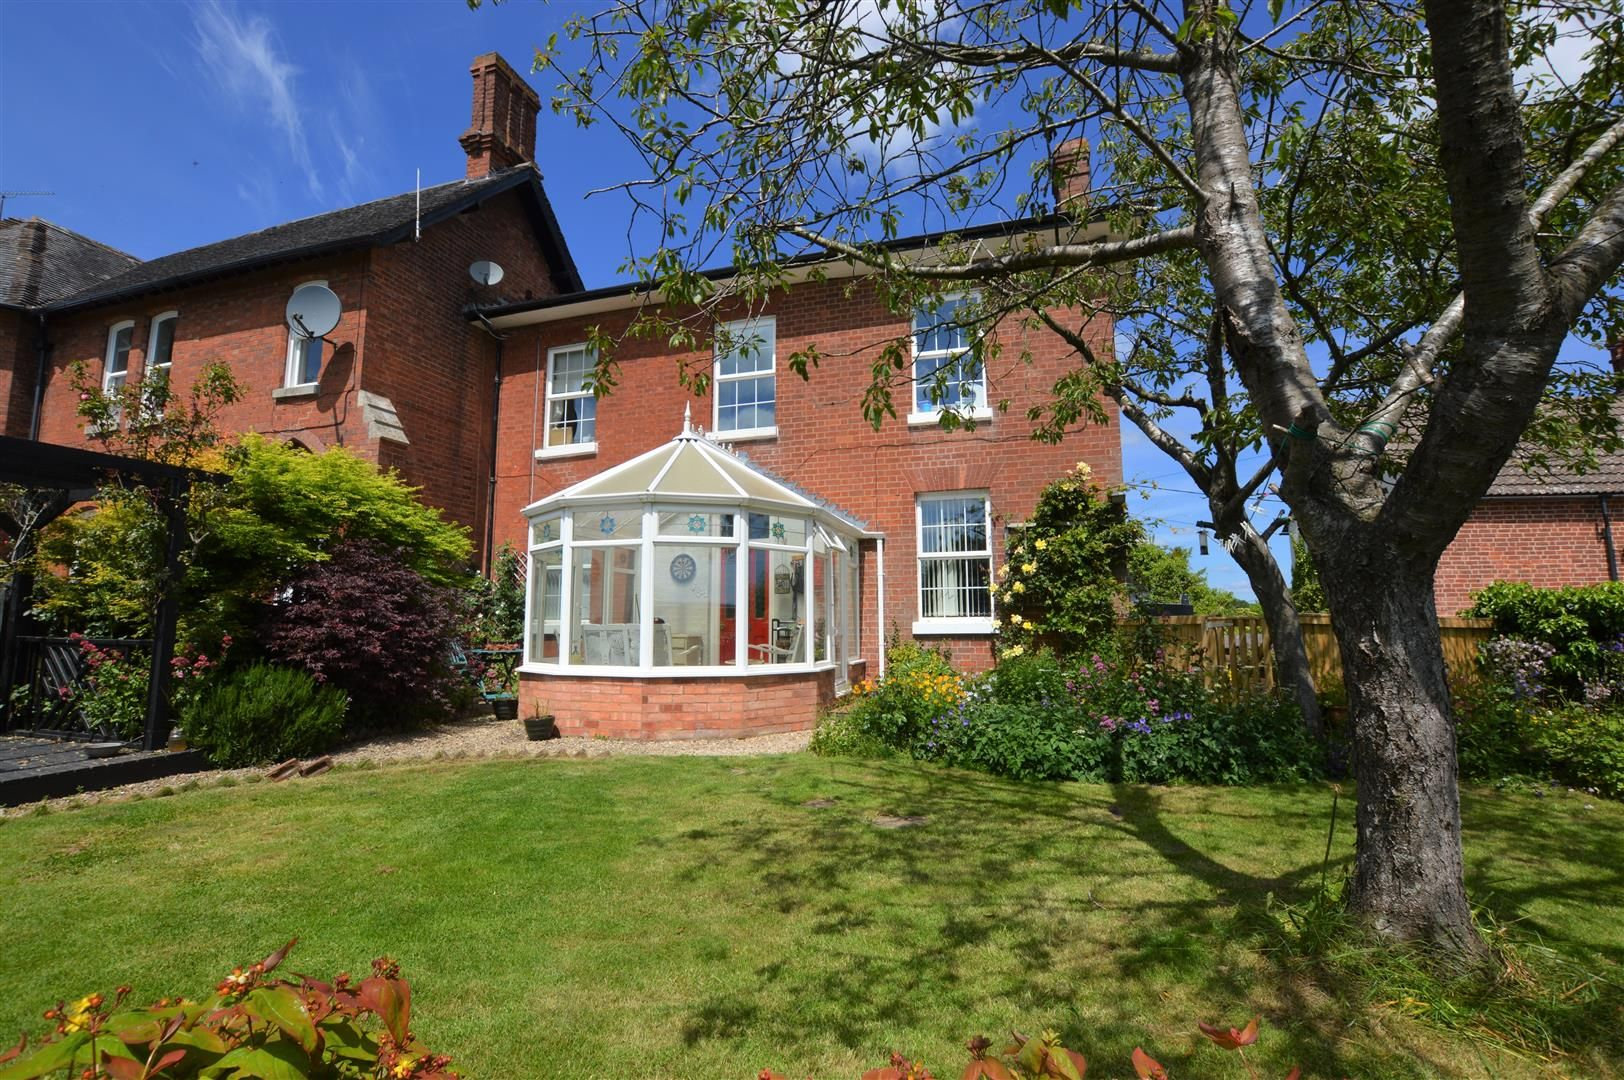 4 bed semi-detached for sale in Monkland, HR6